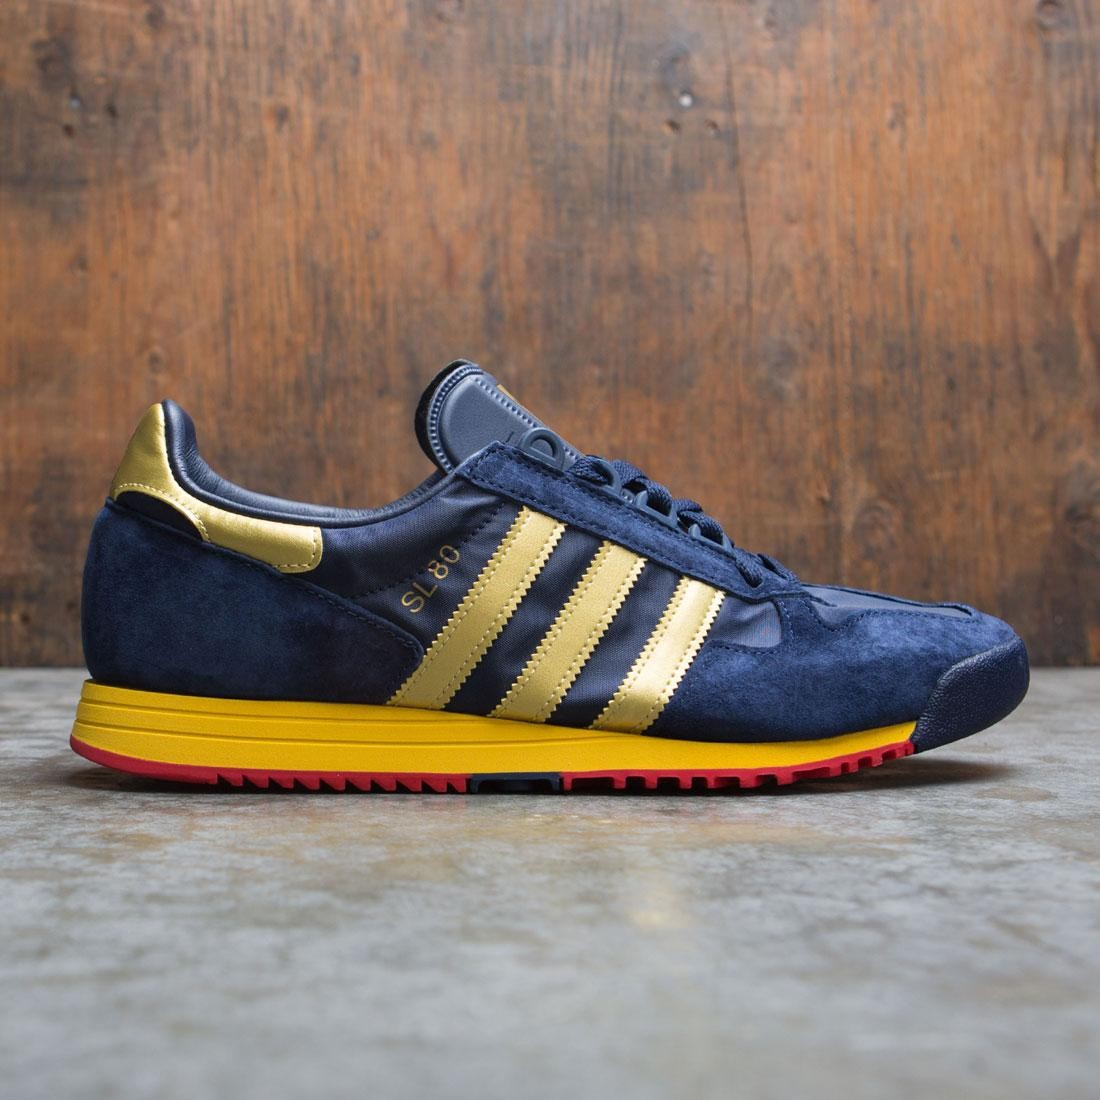 Adidas Men SL 80 Spezial (navy / collegiate navy / gold metallic / scarlet)